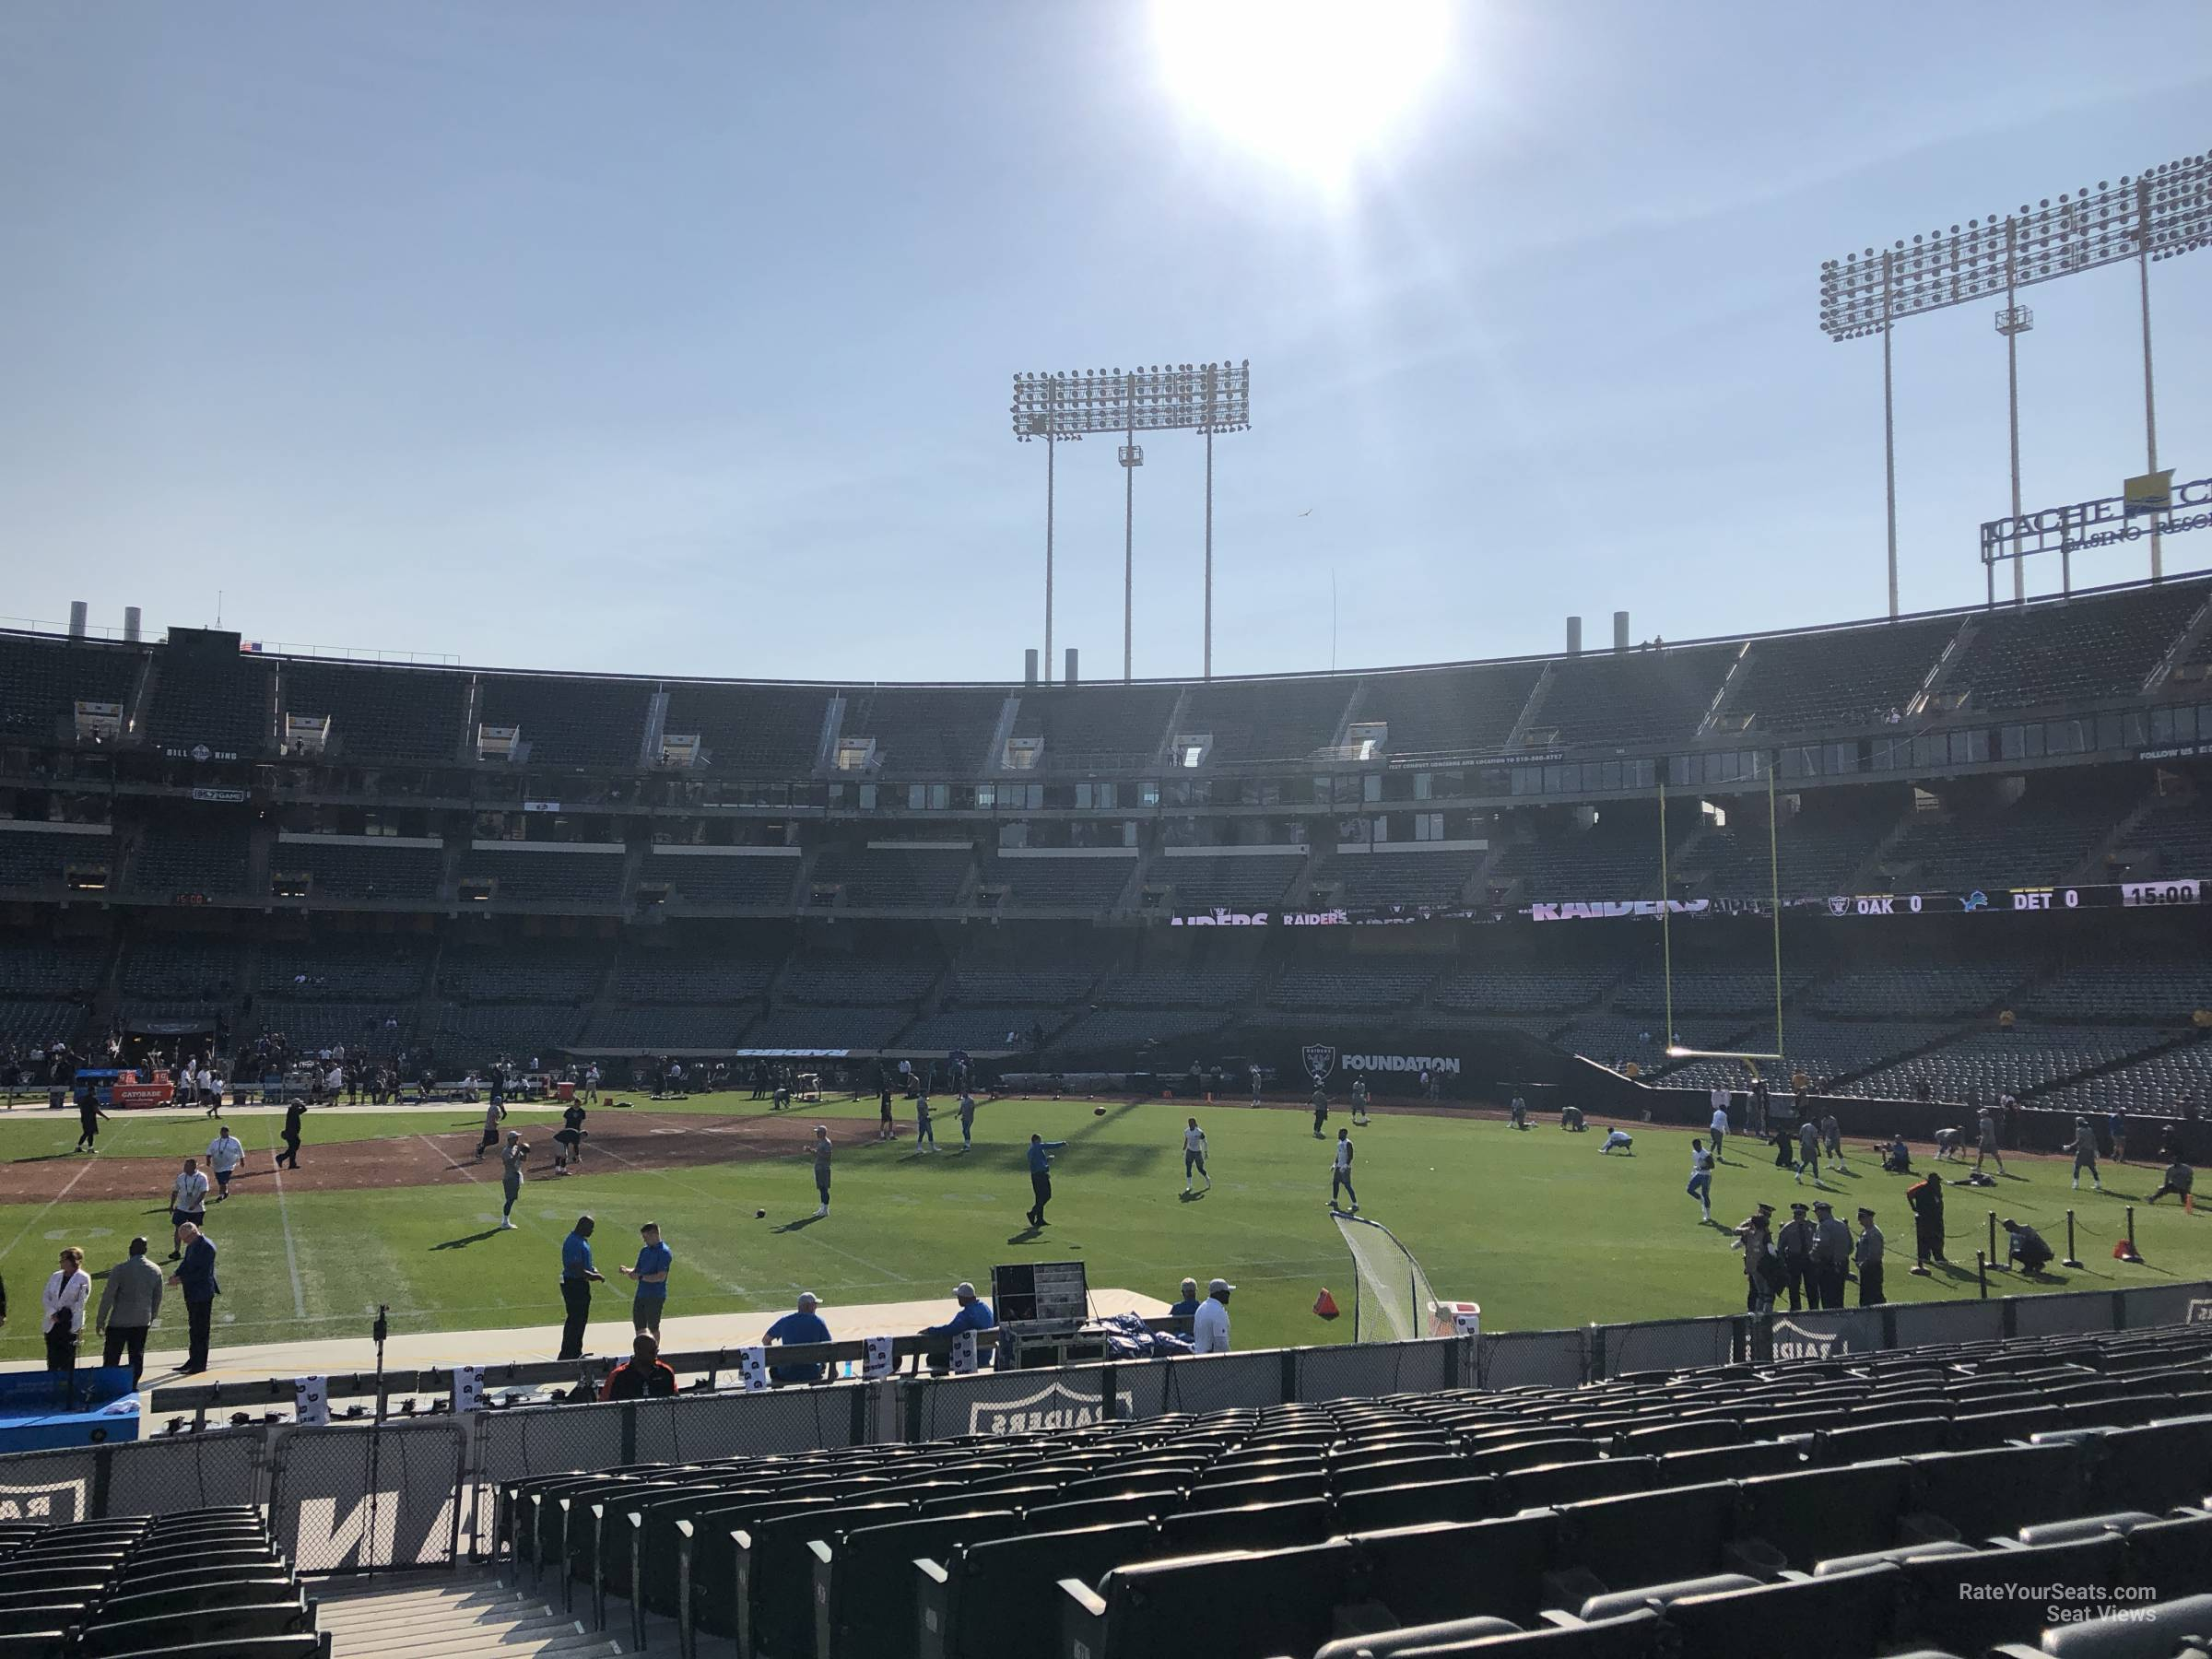 Oakland Raiders Seat View for Oakland Coliseum Section 141, Row 15